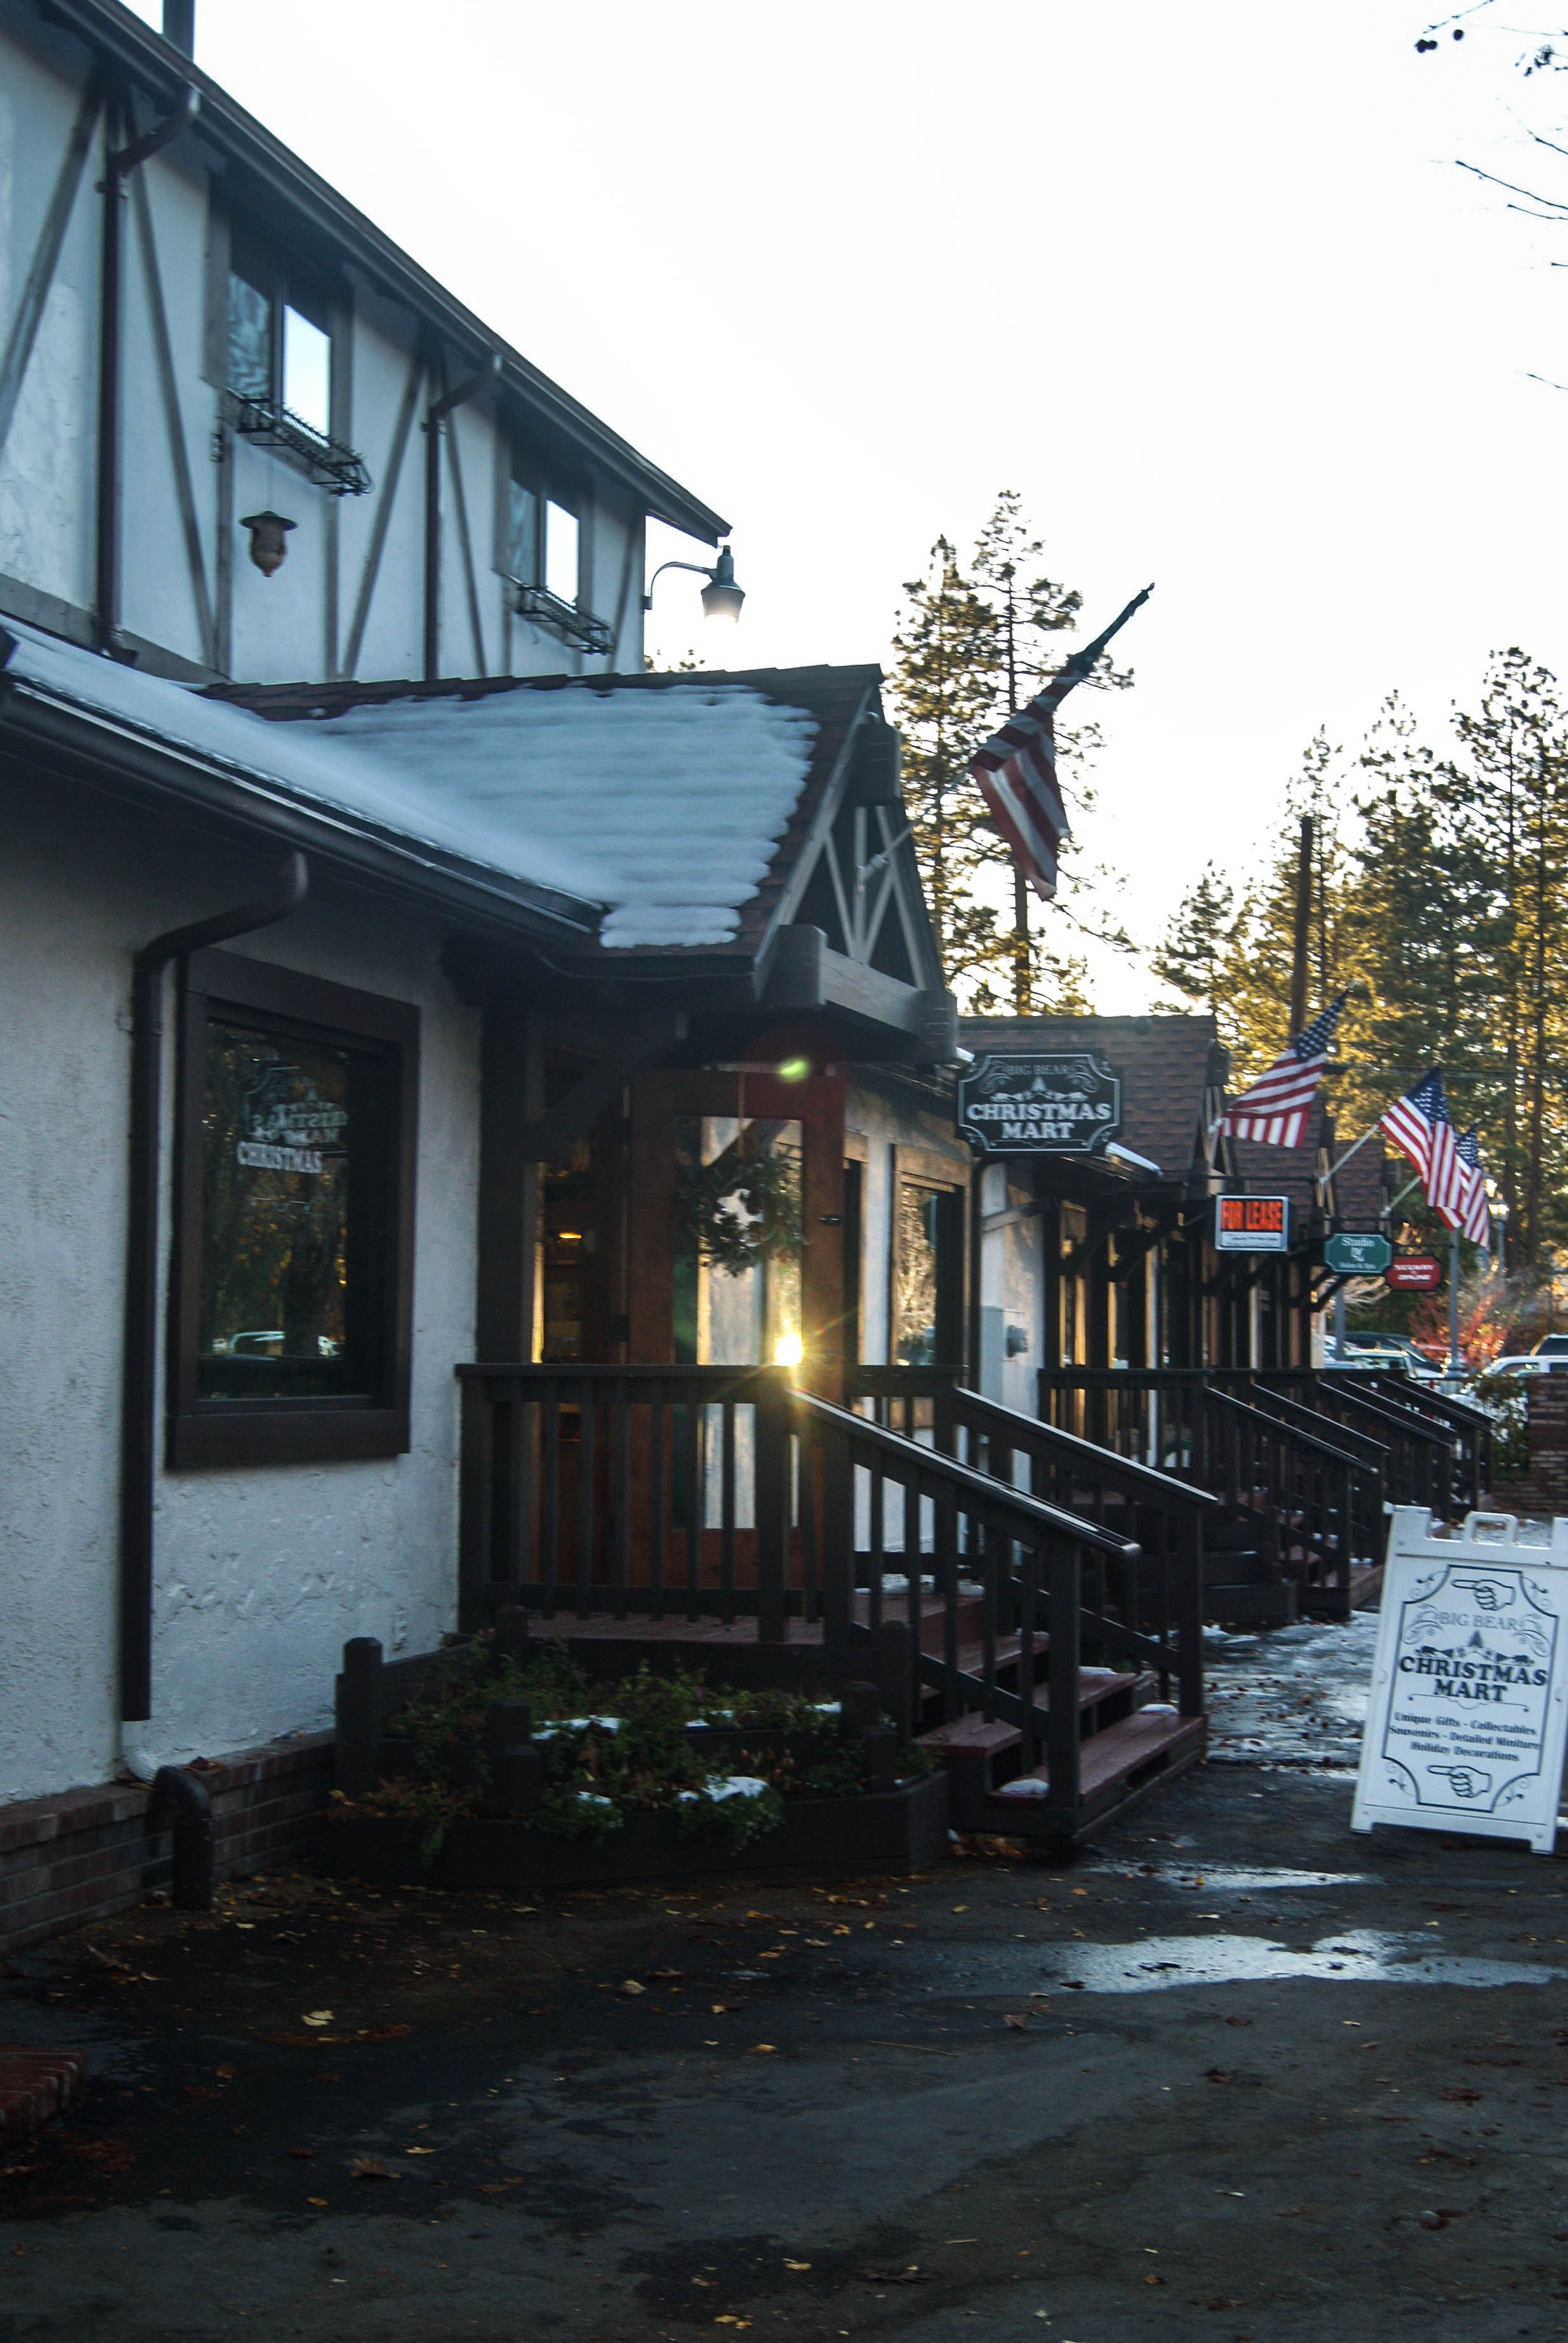 The Big Bear Lake Village Is Beautiful With Images Big Bear Lake Lake Village Big Bear California